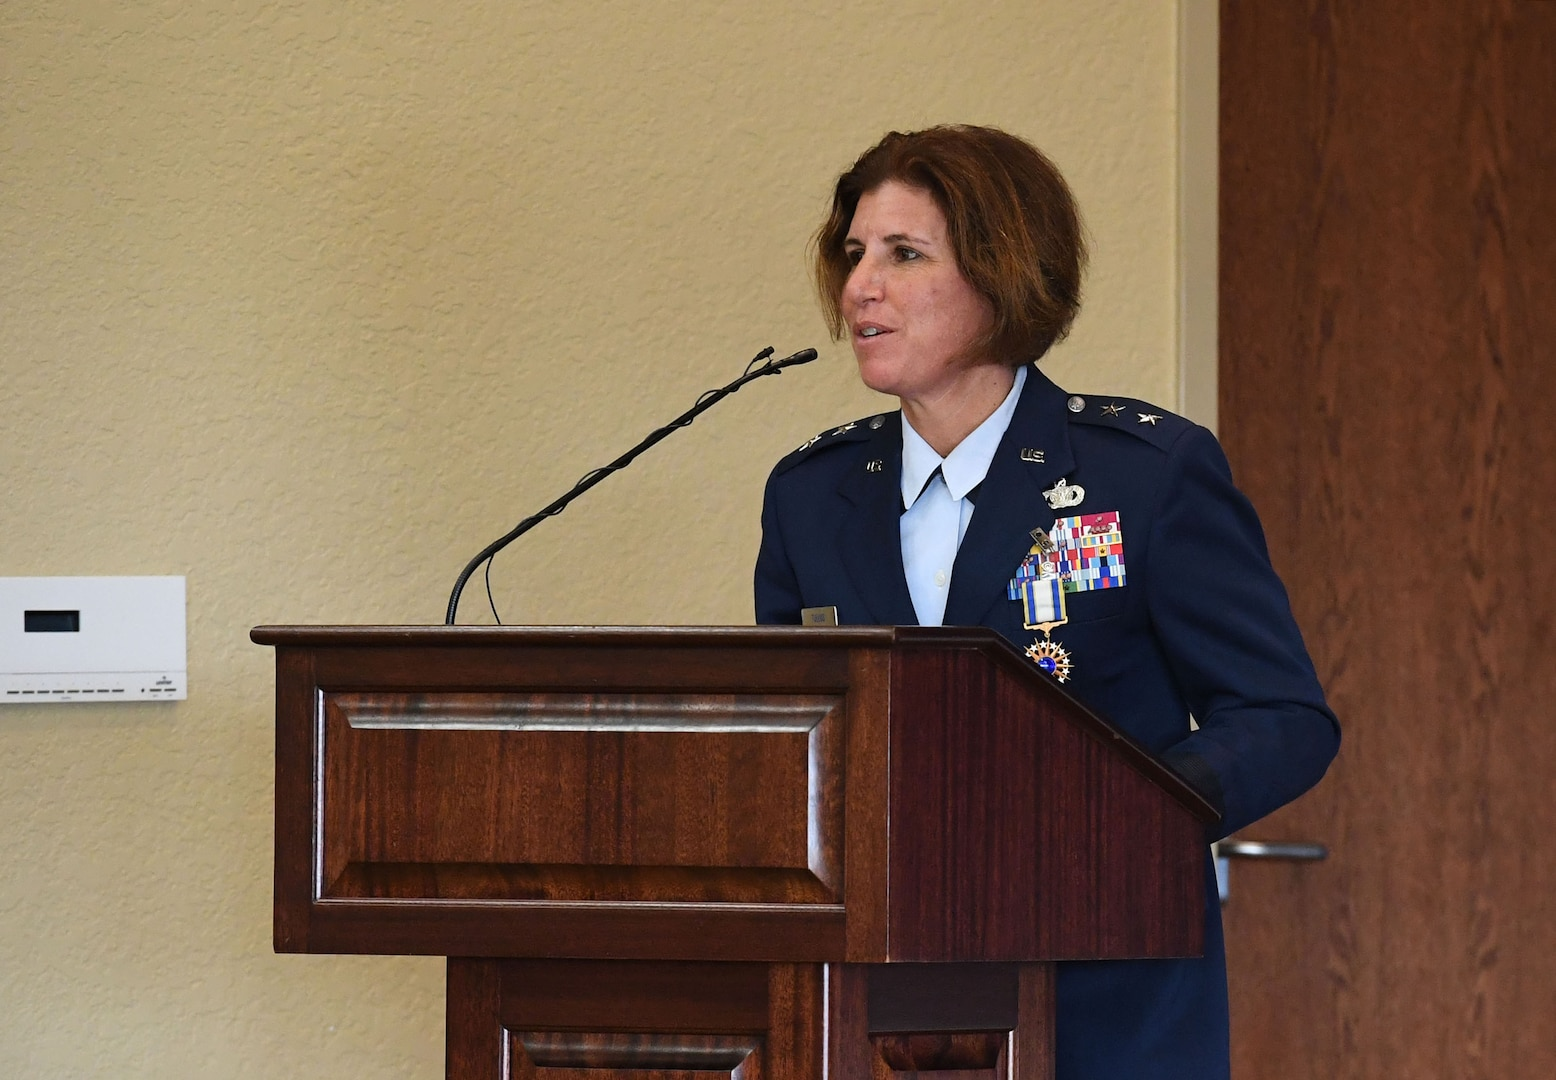 U.S. Air Force Maj. Gen. Andrea Tullos, Second Air Force commander, delivers remarks during the Second Air Force change of command ceremony inside the Bay Breeze Event Center at Keesler Air Force Base, Mississippi, July 30, 2021. The ceremony is a symbol of command being exchanged from one commander to the next. Tullos relinquished command of the Second Air Force to Maj. Gen. Michele Edmondson. (U.S. Air Force photo by Kemberly Groue)